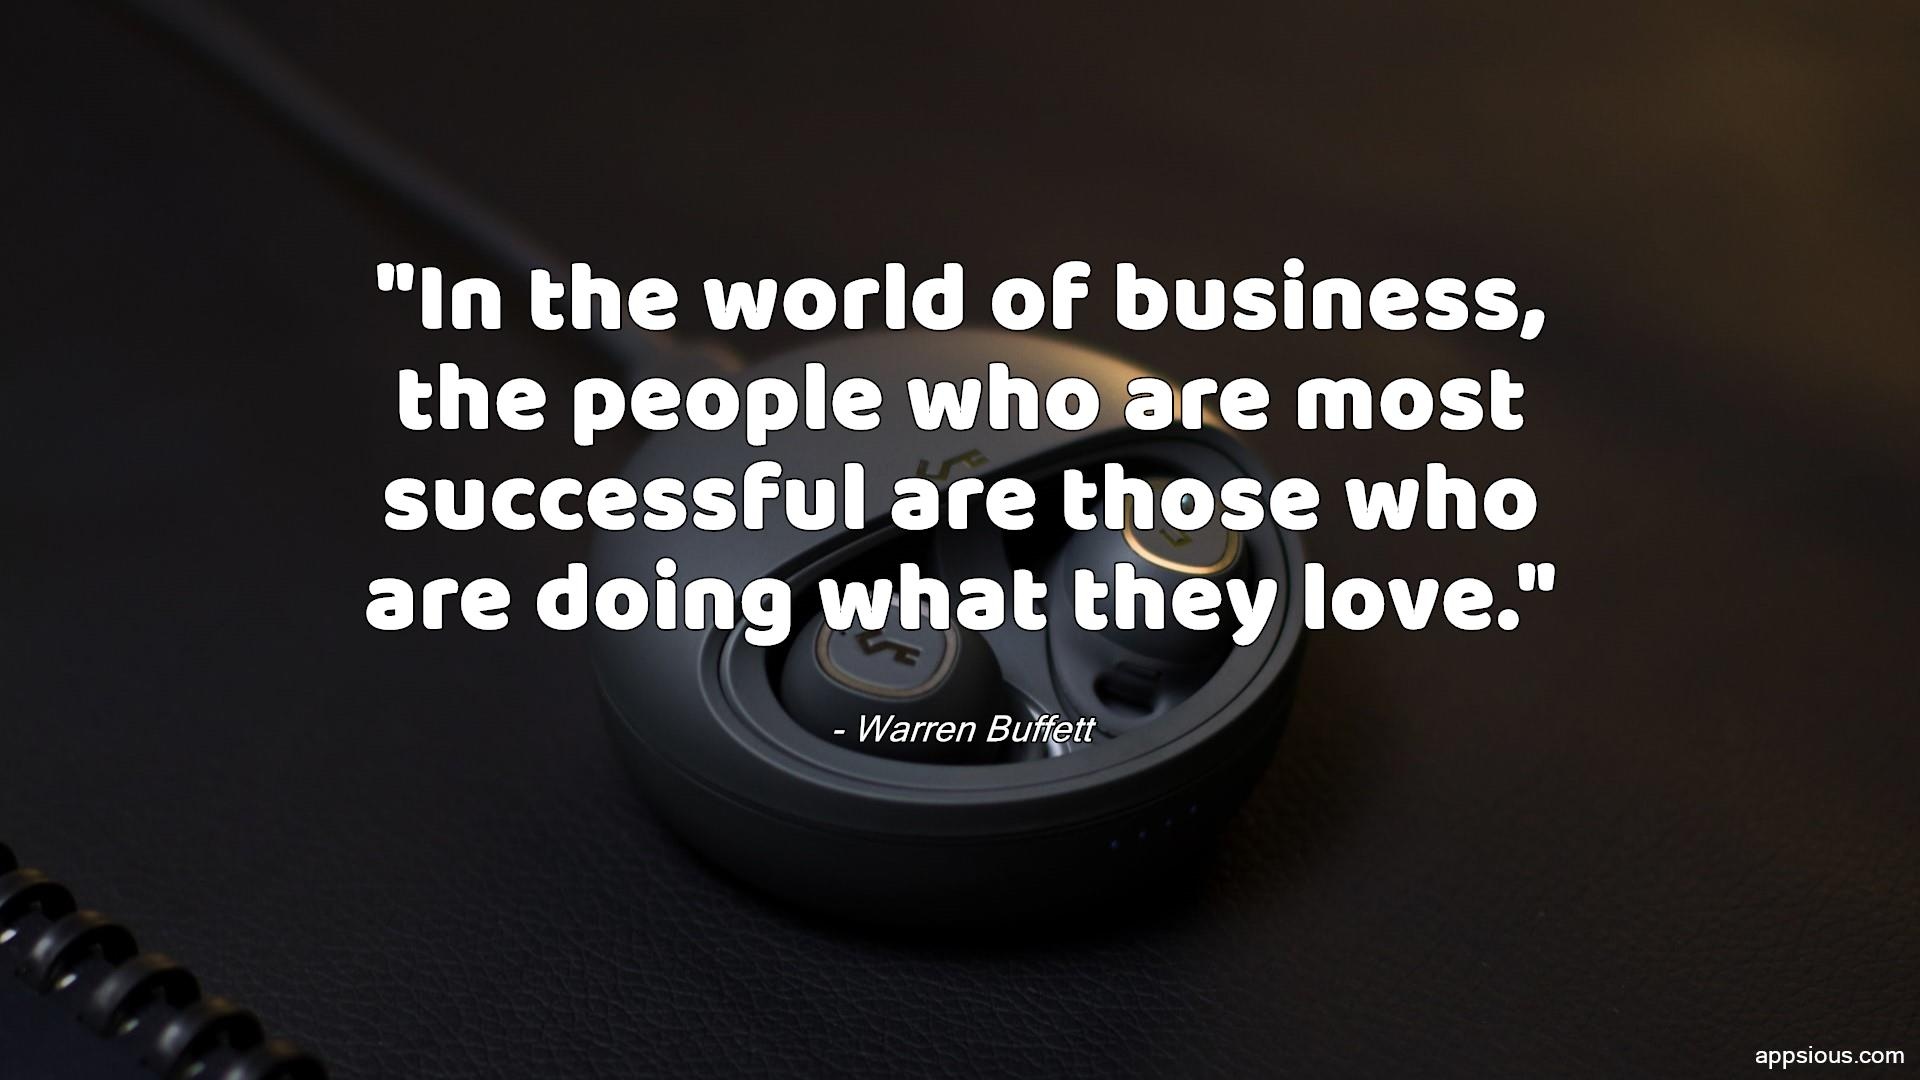 In the world of business, the people who are most successful are those who are doing what they love.